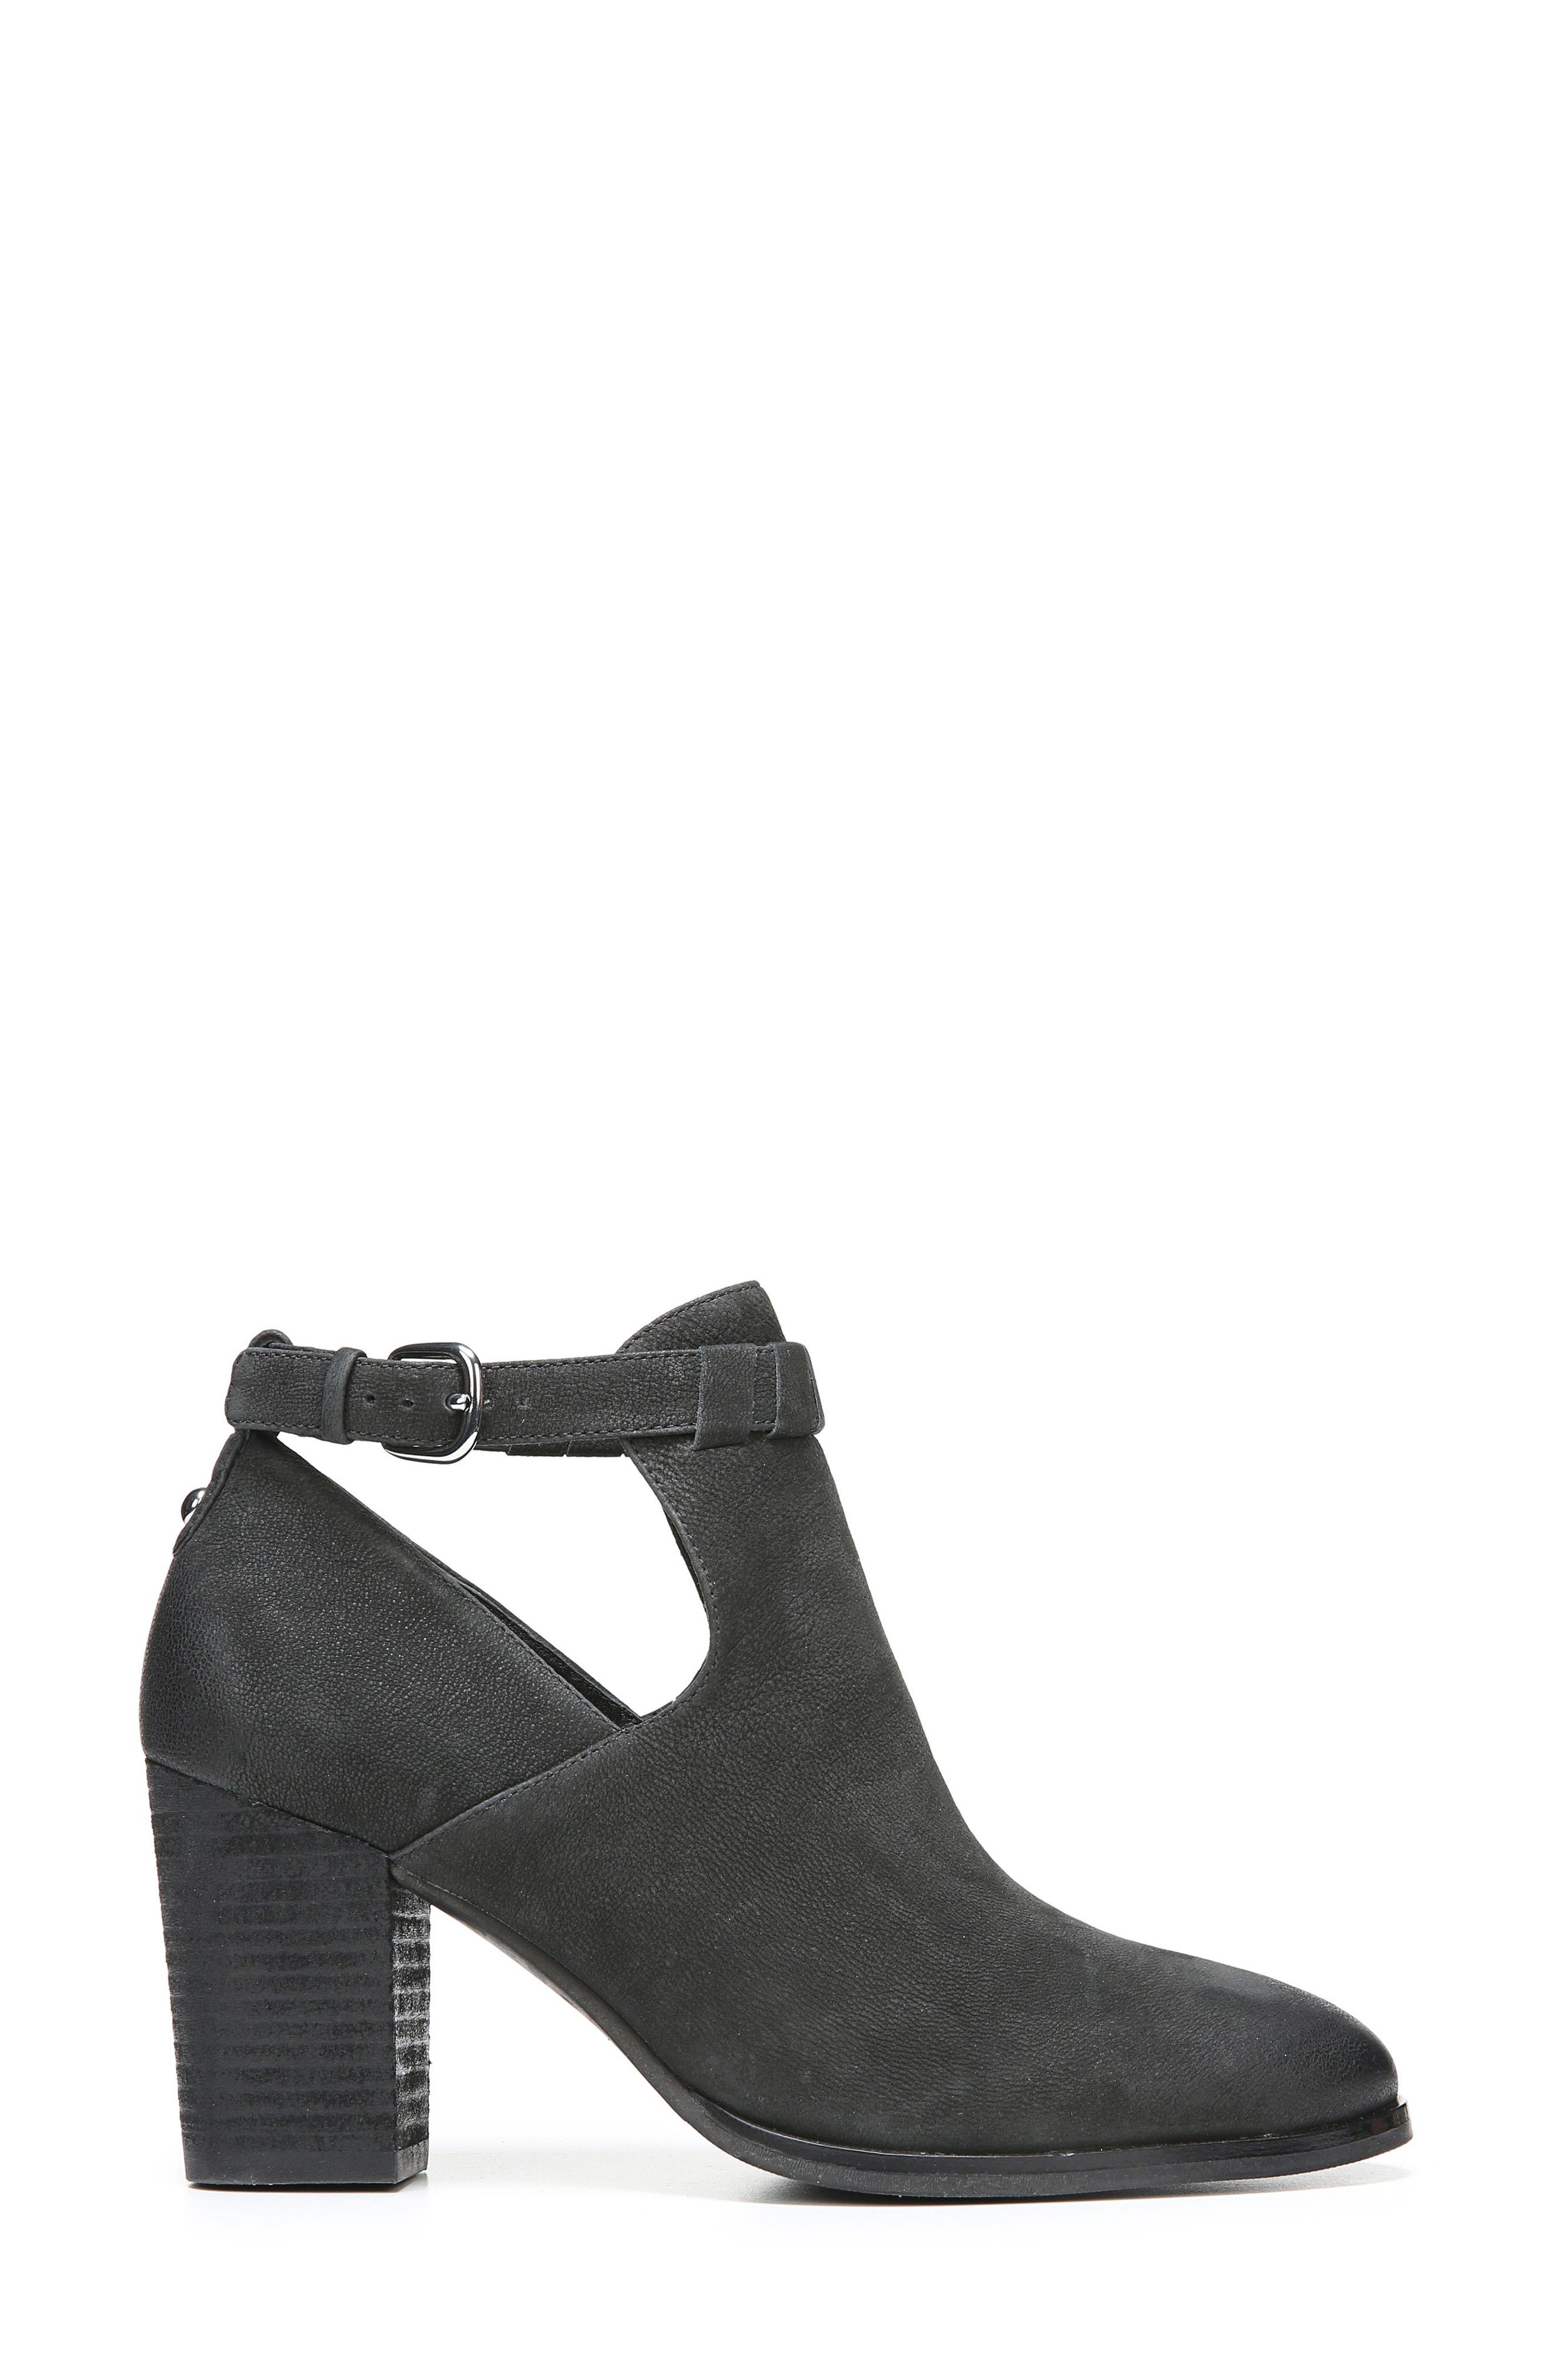 Samantha Block Heel Bootie,                             Alternate thumbnail 3, color,                             Black Nubuck